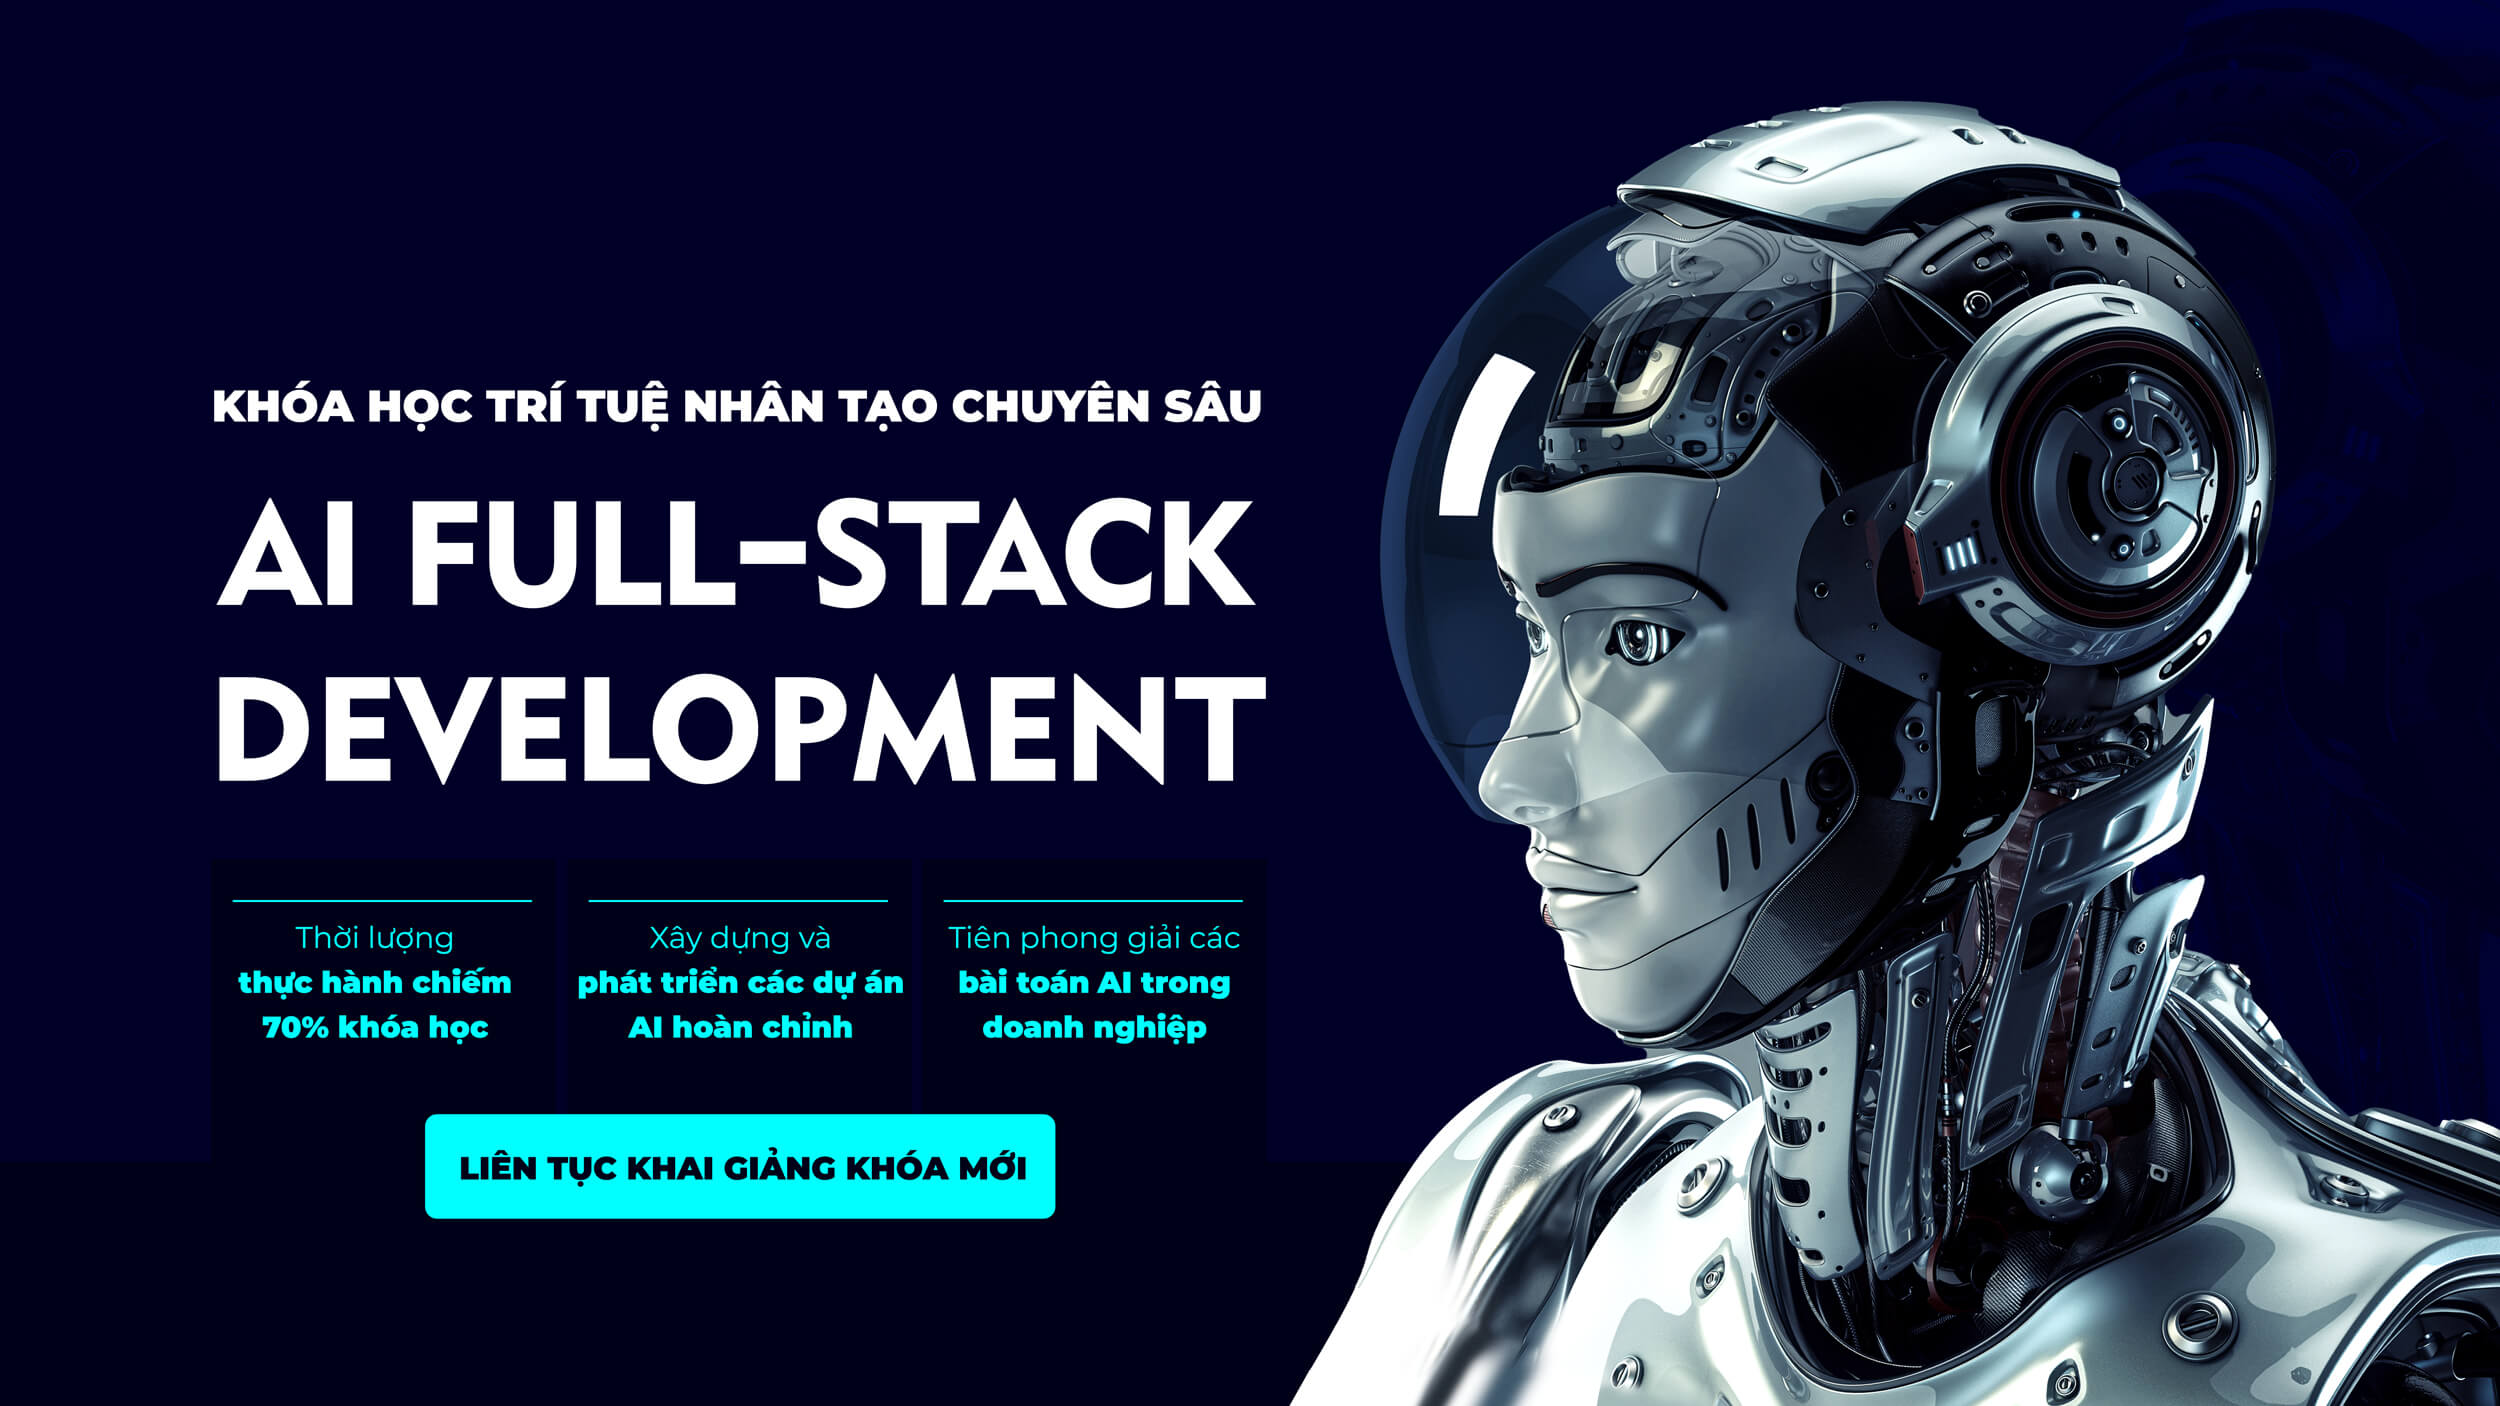 AI Full-stack Development